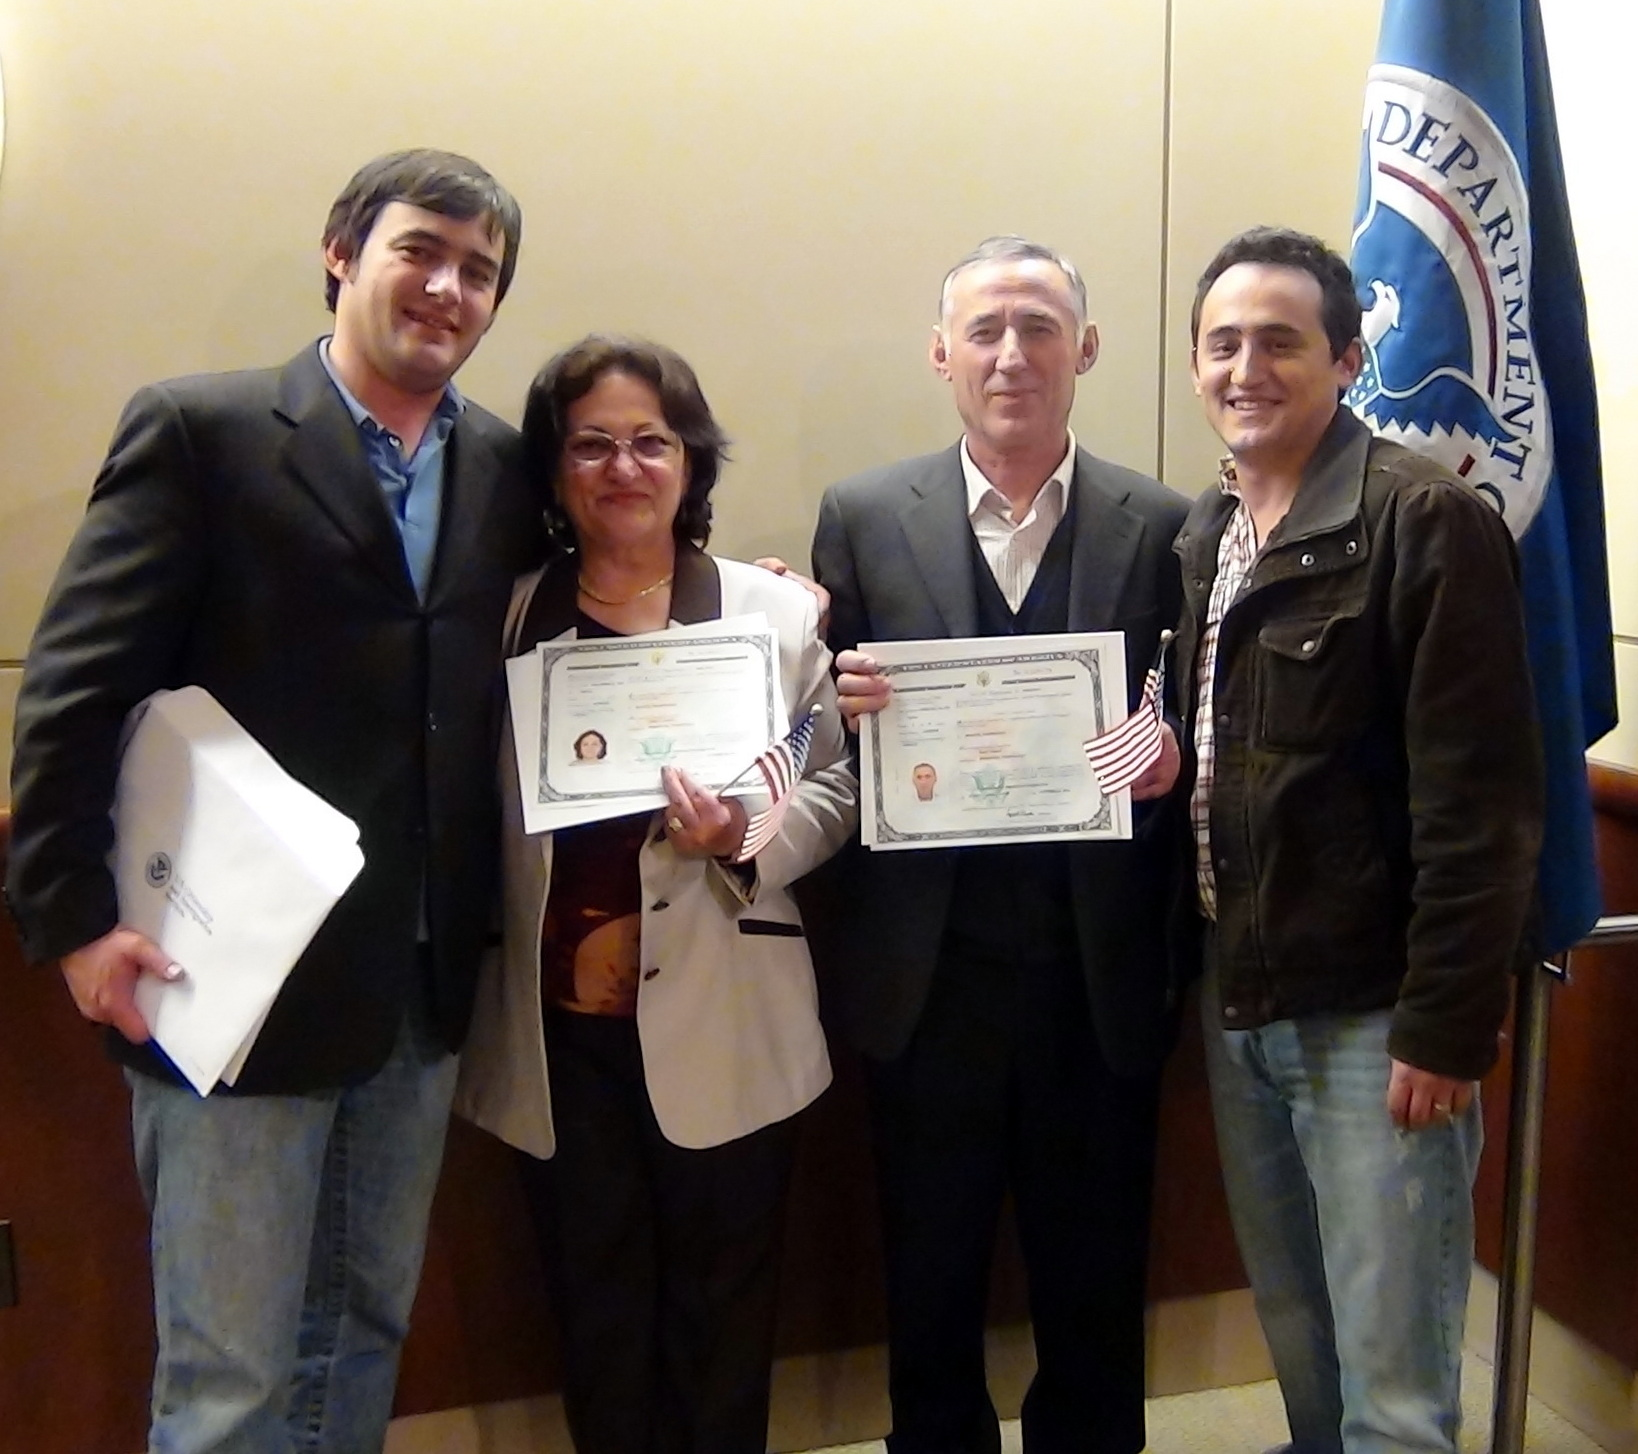 Merita and Naim Hyseni were sworn in as United States citizens on October 27, 2011. Pictured with their sons Oltion (left) and Julian (right).